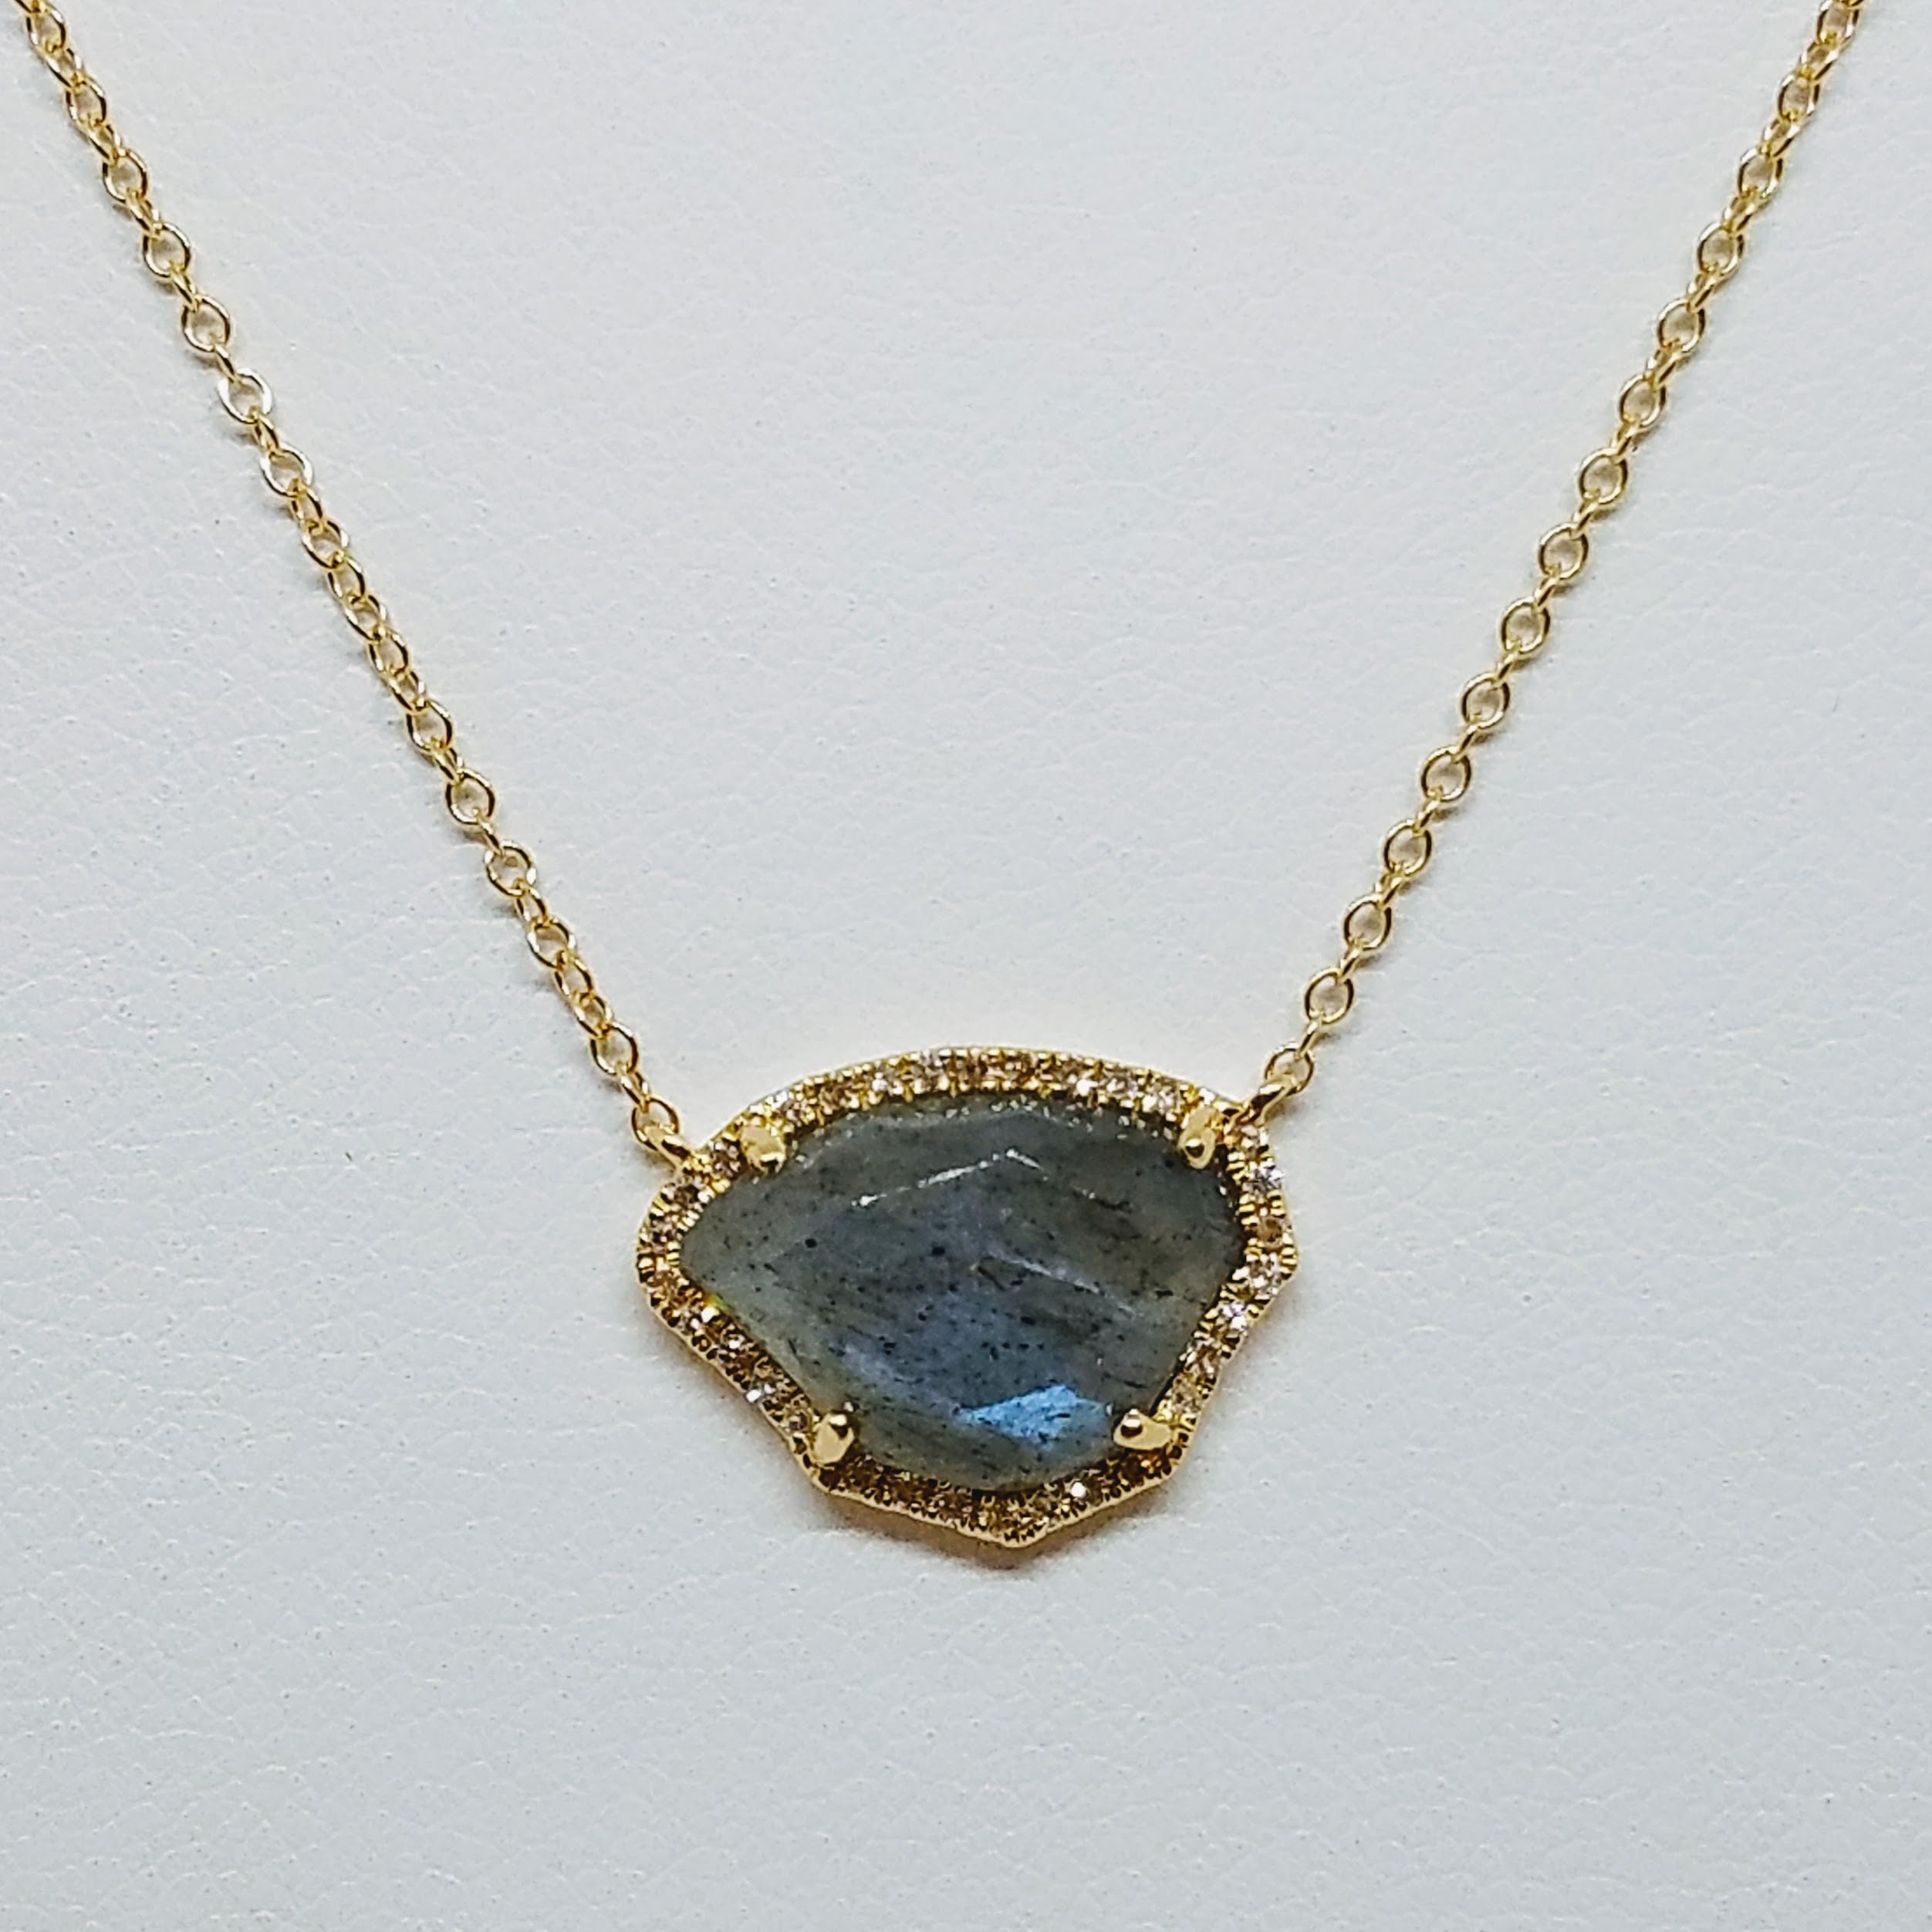 Kauai with Labradorite